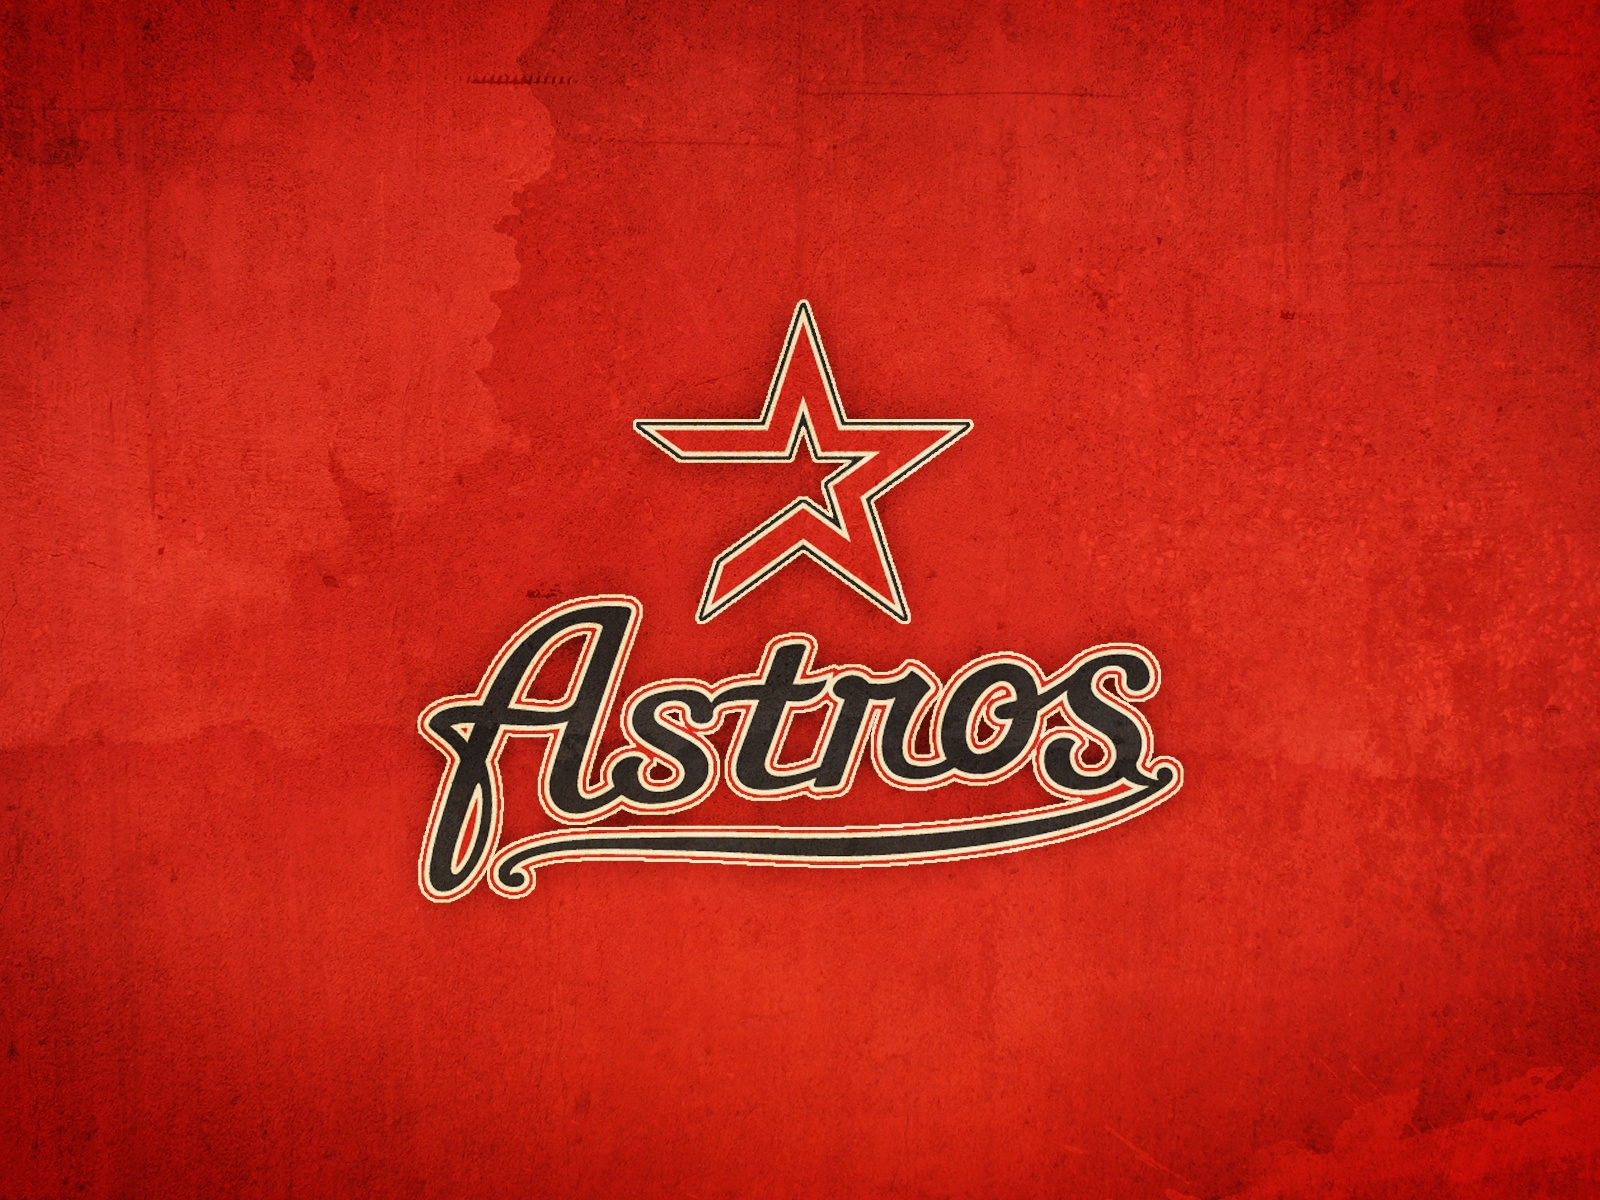 Astros Wallpaper